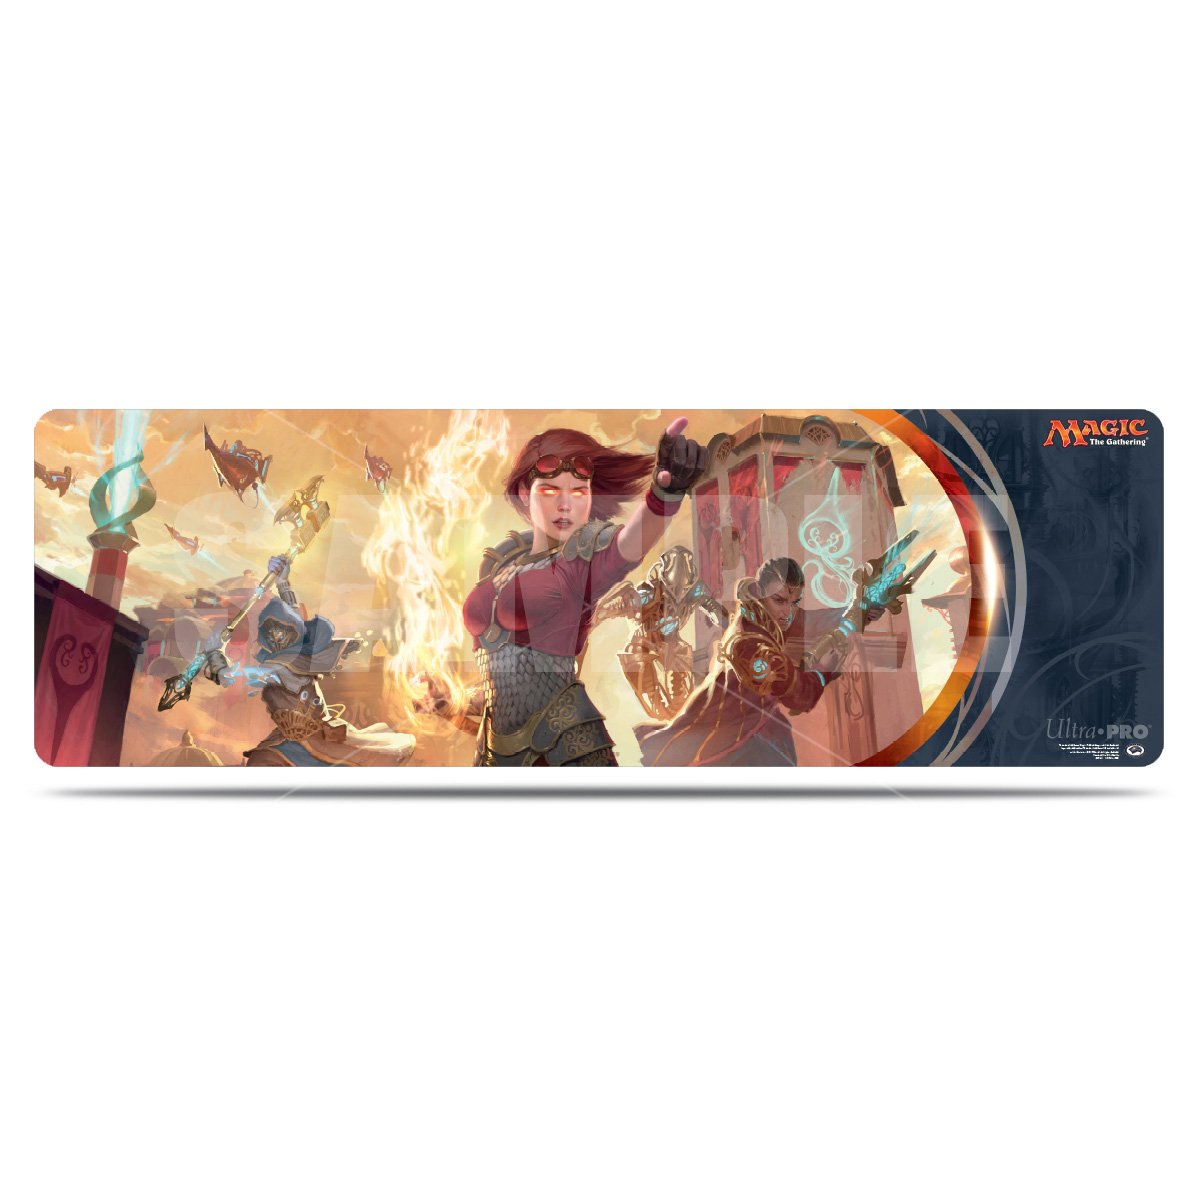 Magic the Gathering: Aether Revolt 8ft Table Play Mat - Key Art by Ultra Pro